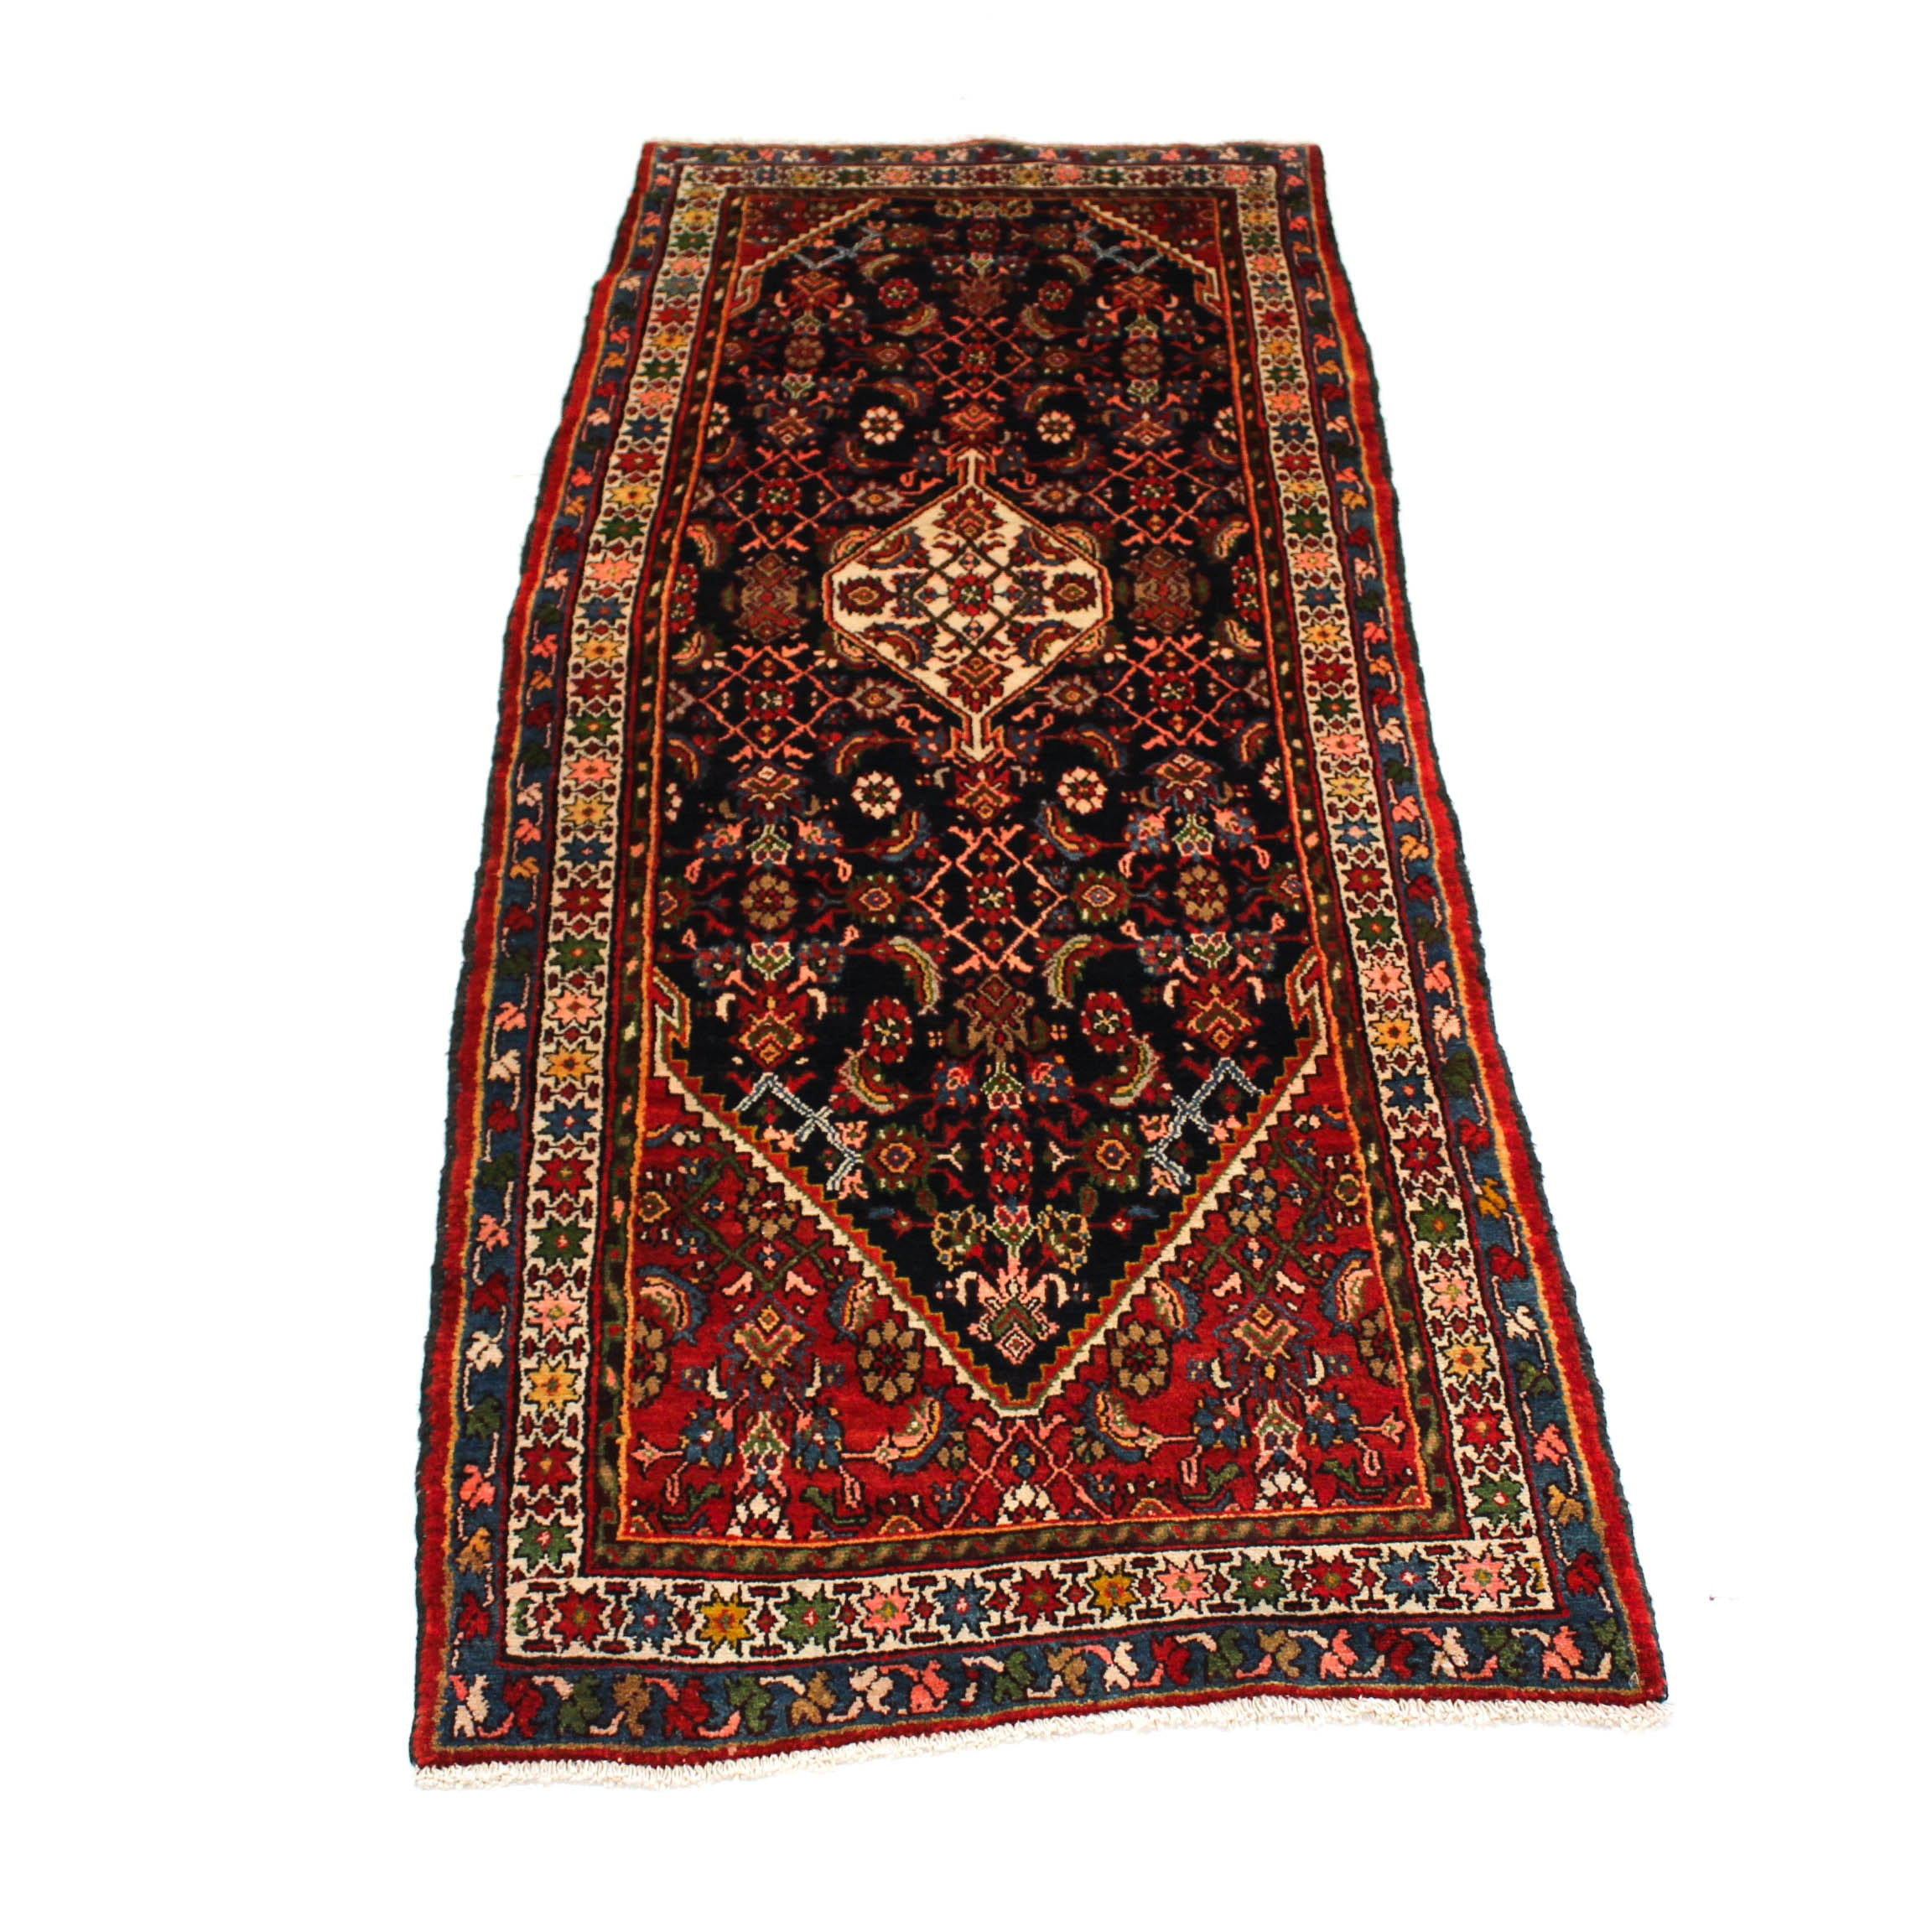 3'7 x 9'6 Semi-Antique Hand-Knotted Persian Malayer Carpet Runner